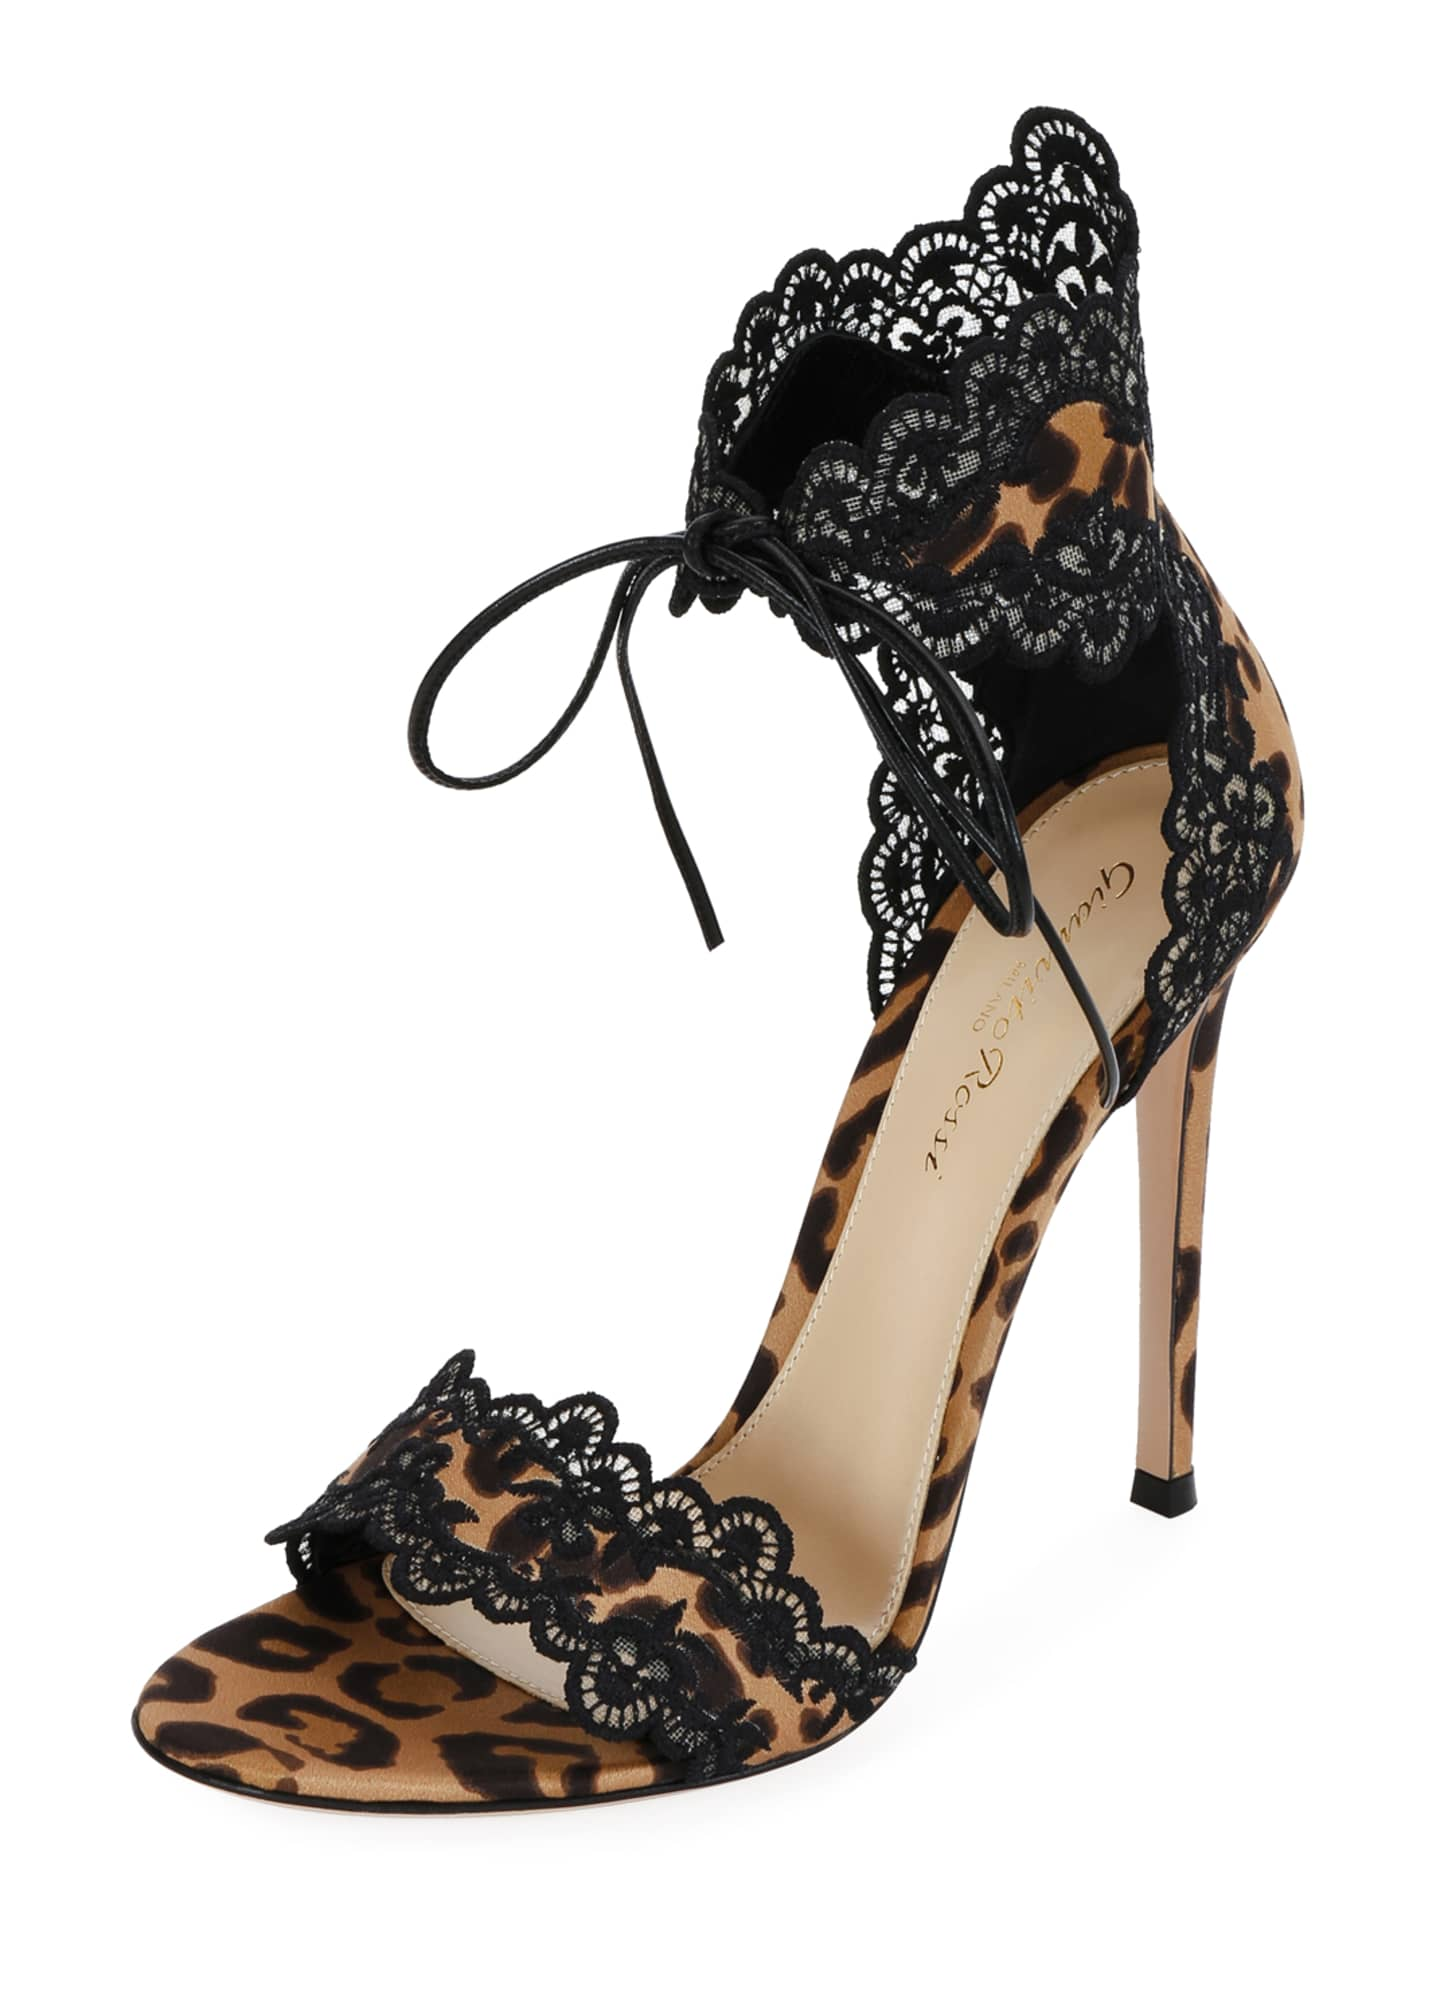 Gianvito Rossi Leopard Satin Lace Sandals